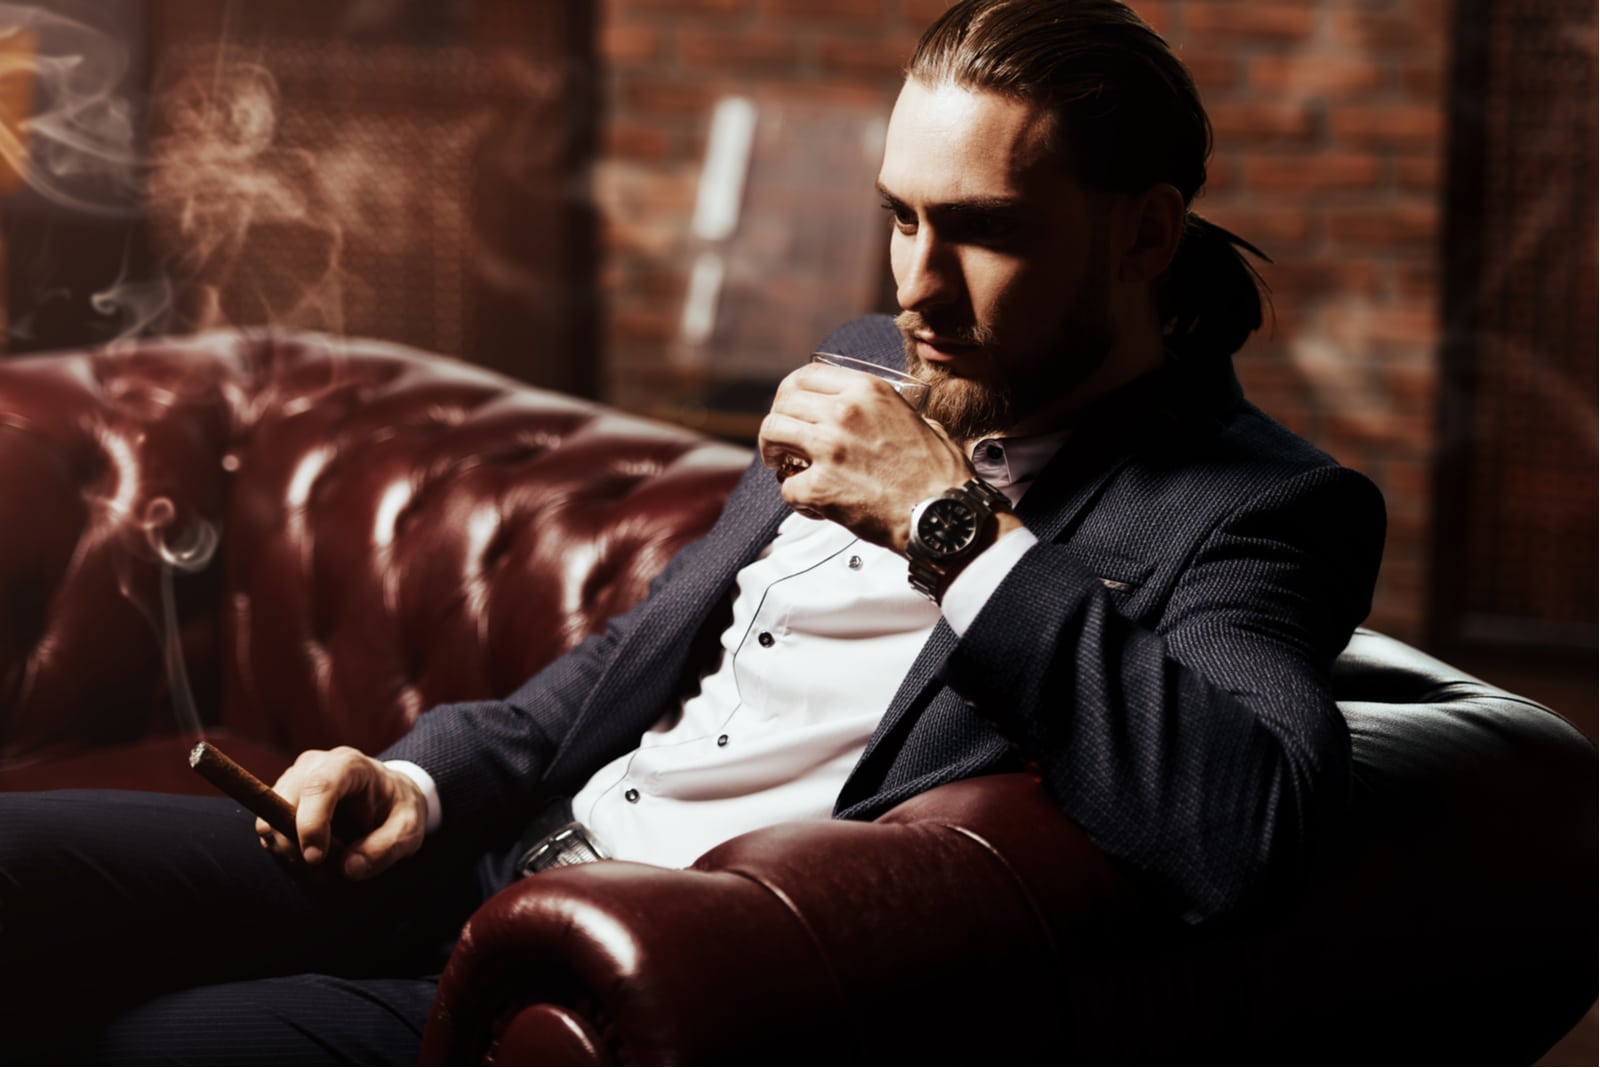 a man sits smoking a cigar and drinking wine